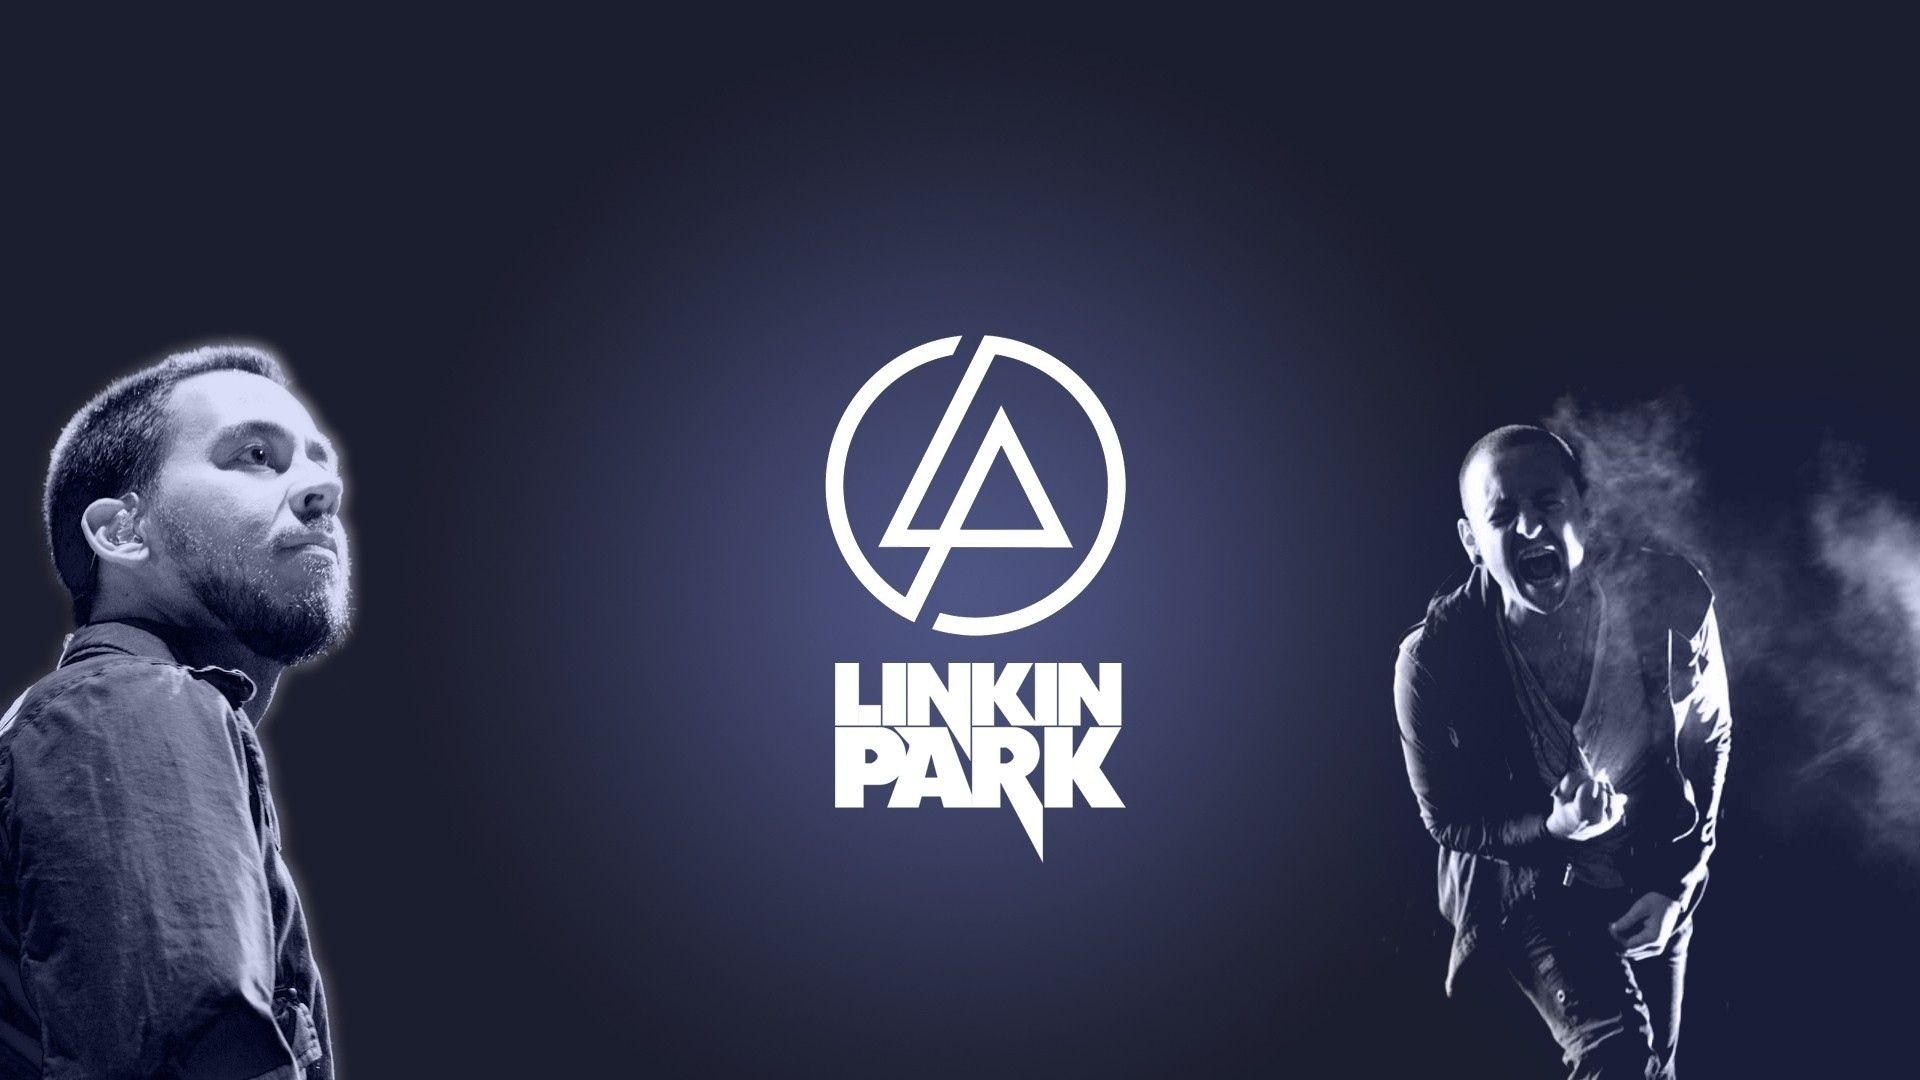 Wallpapers Full Hd Linkin Park Wallpaper Cave